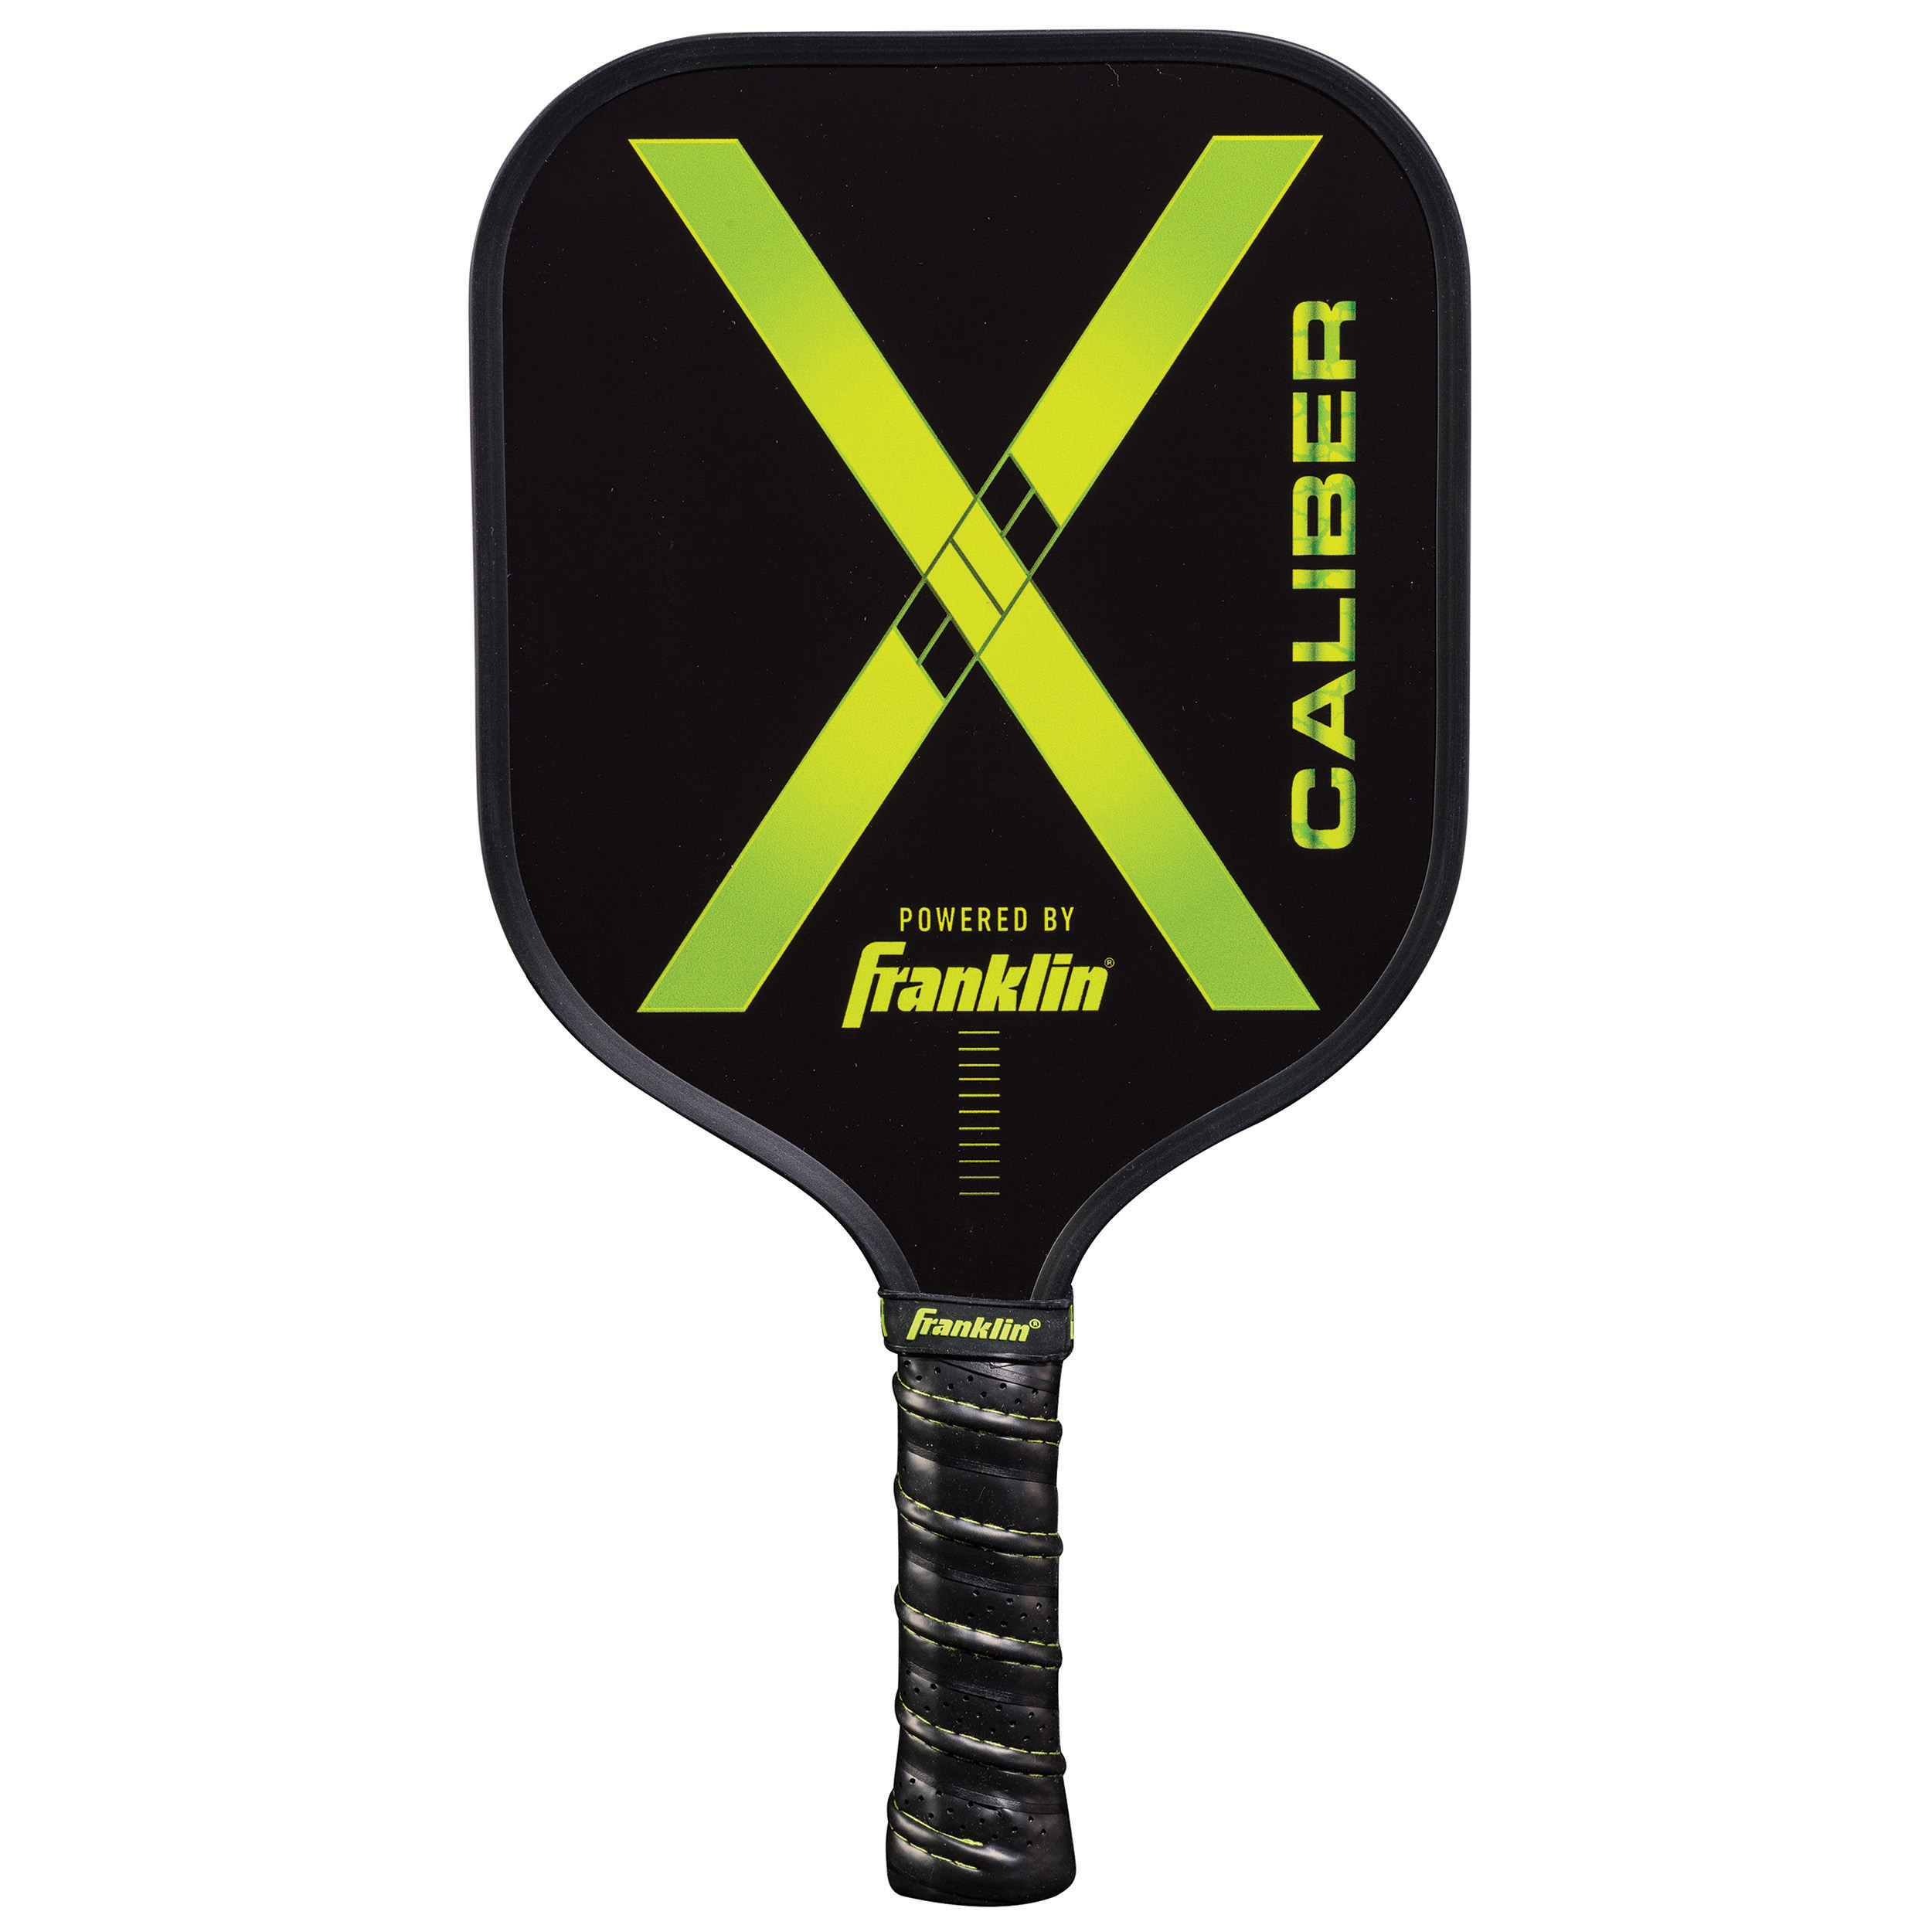 Pickleball-X-Caliber Performance Fiberglass Paddle